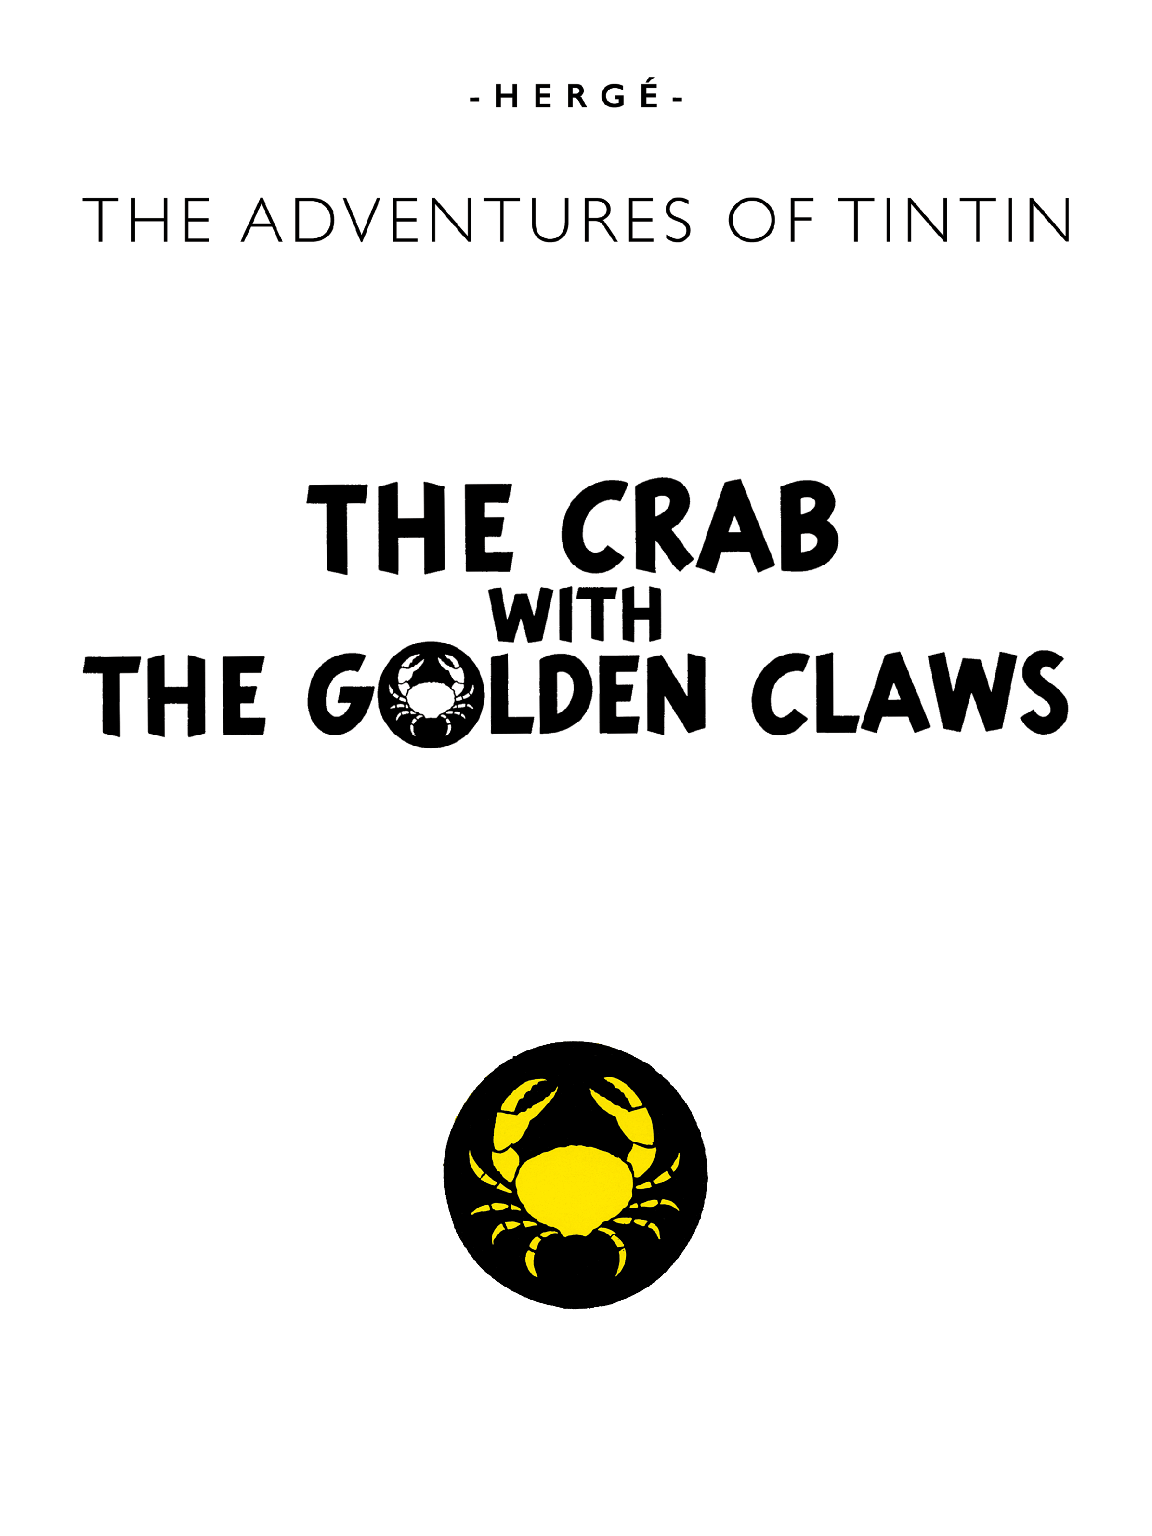 The Crab with the Golden Claws - Page 1